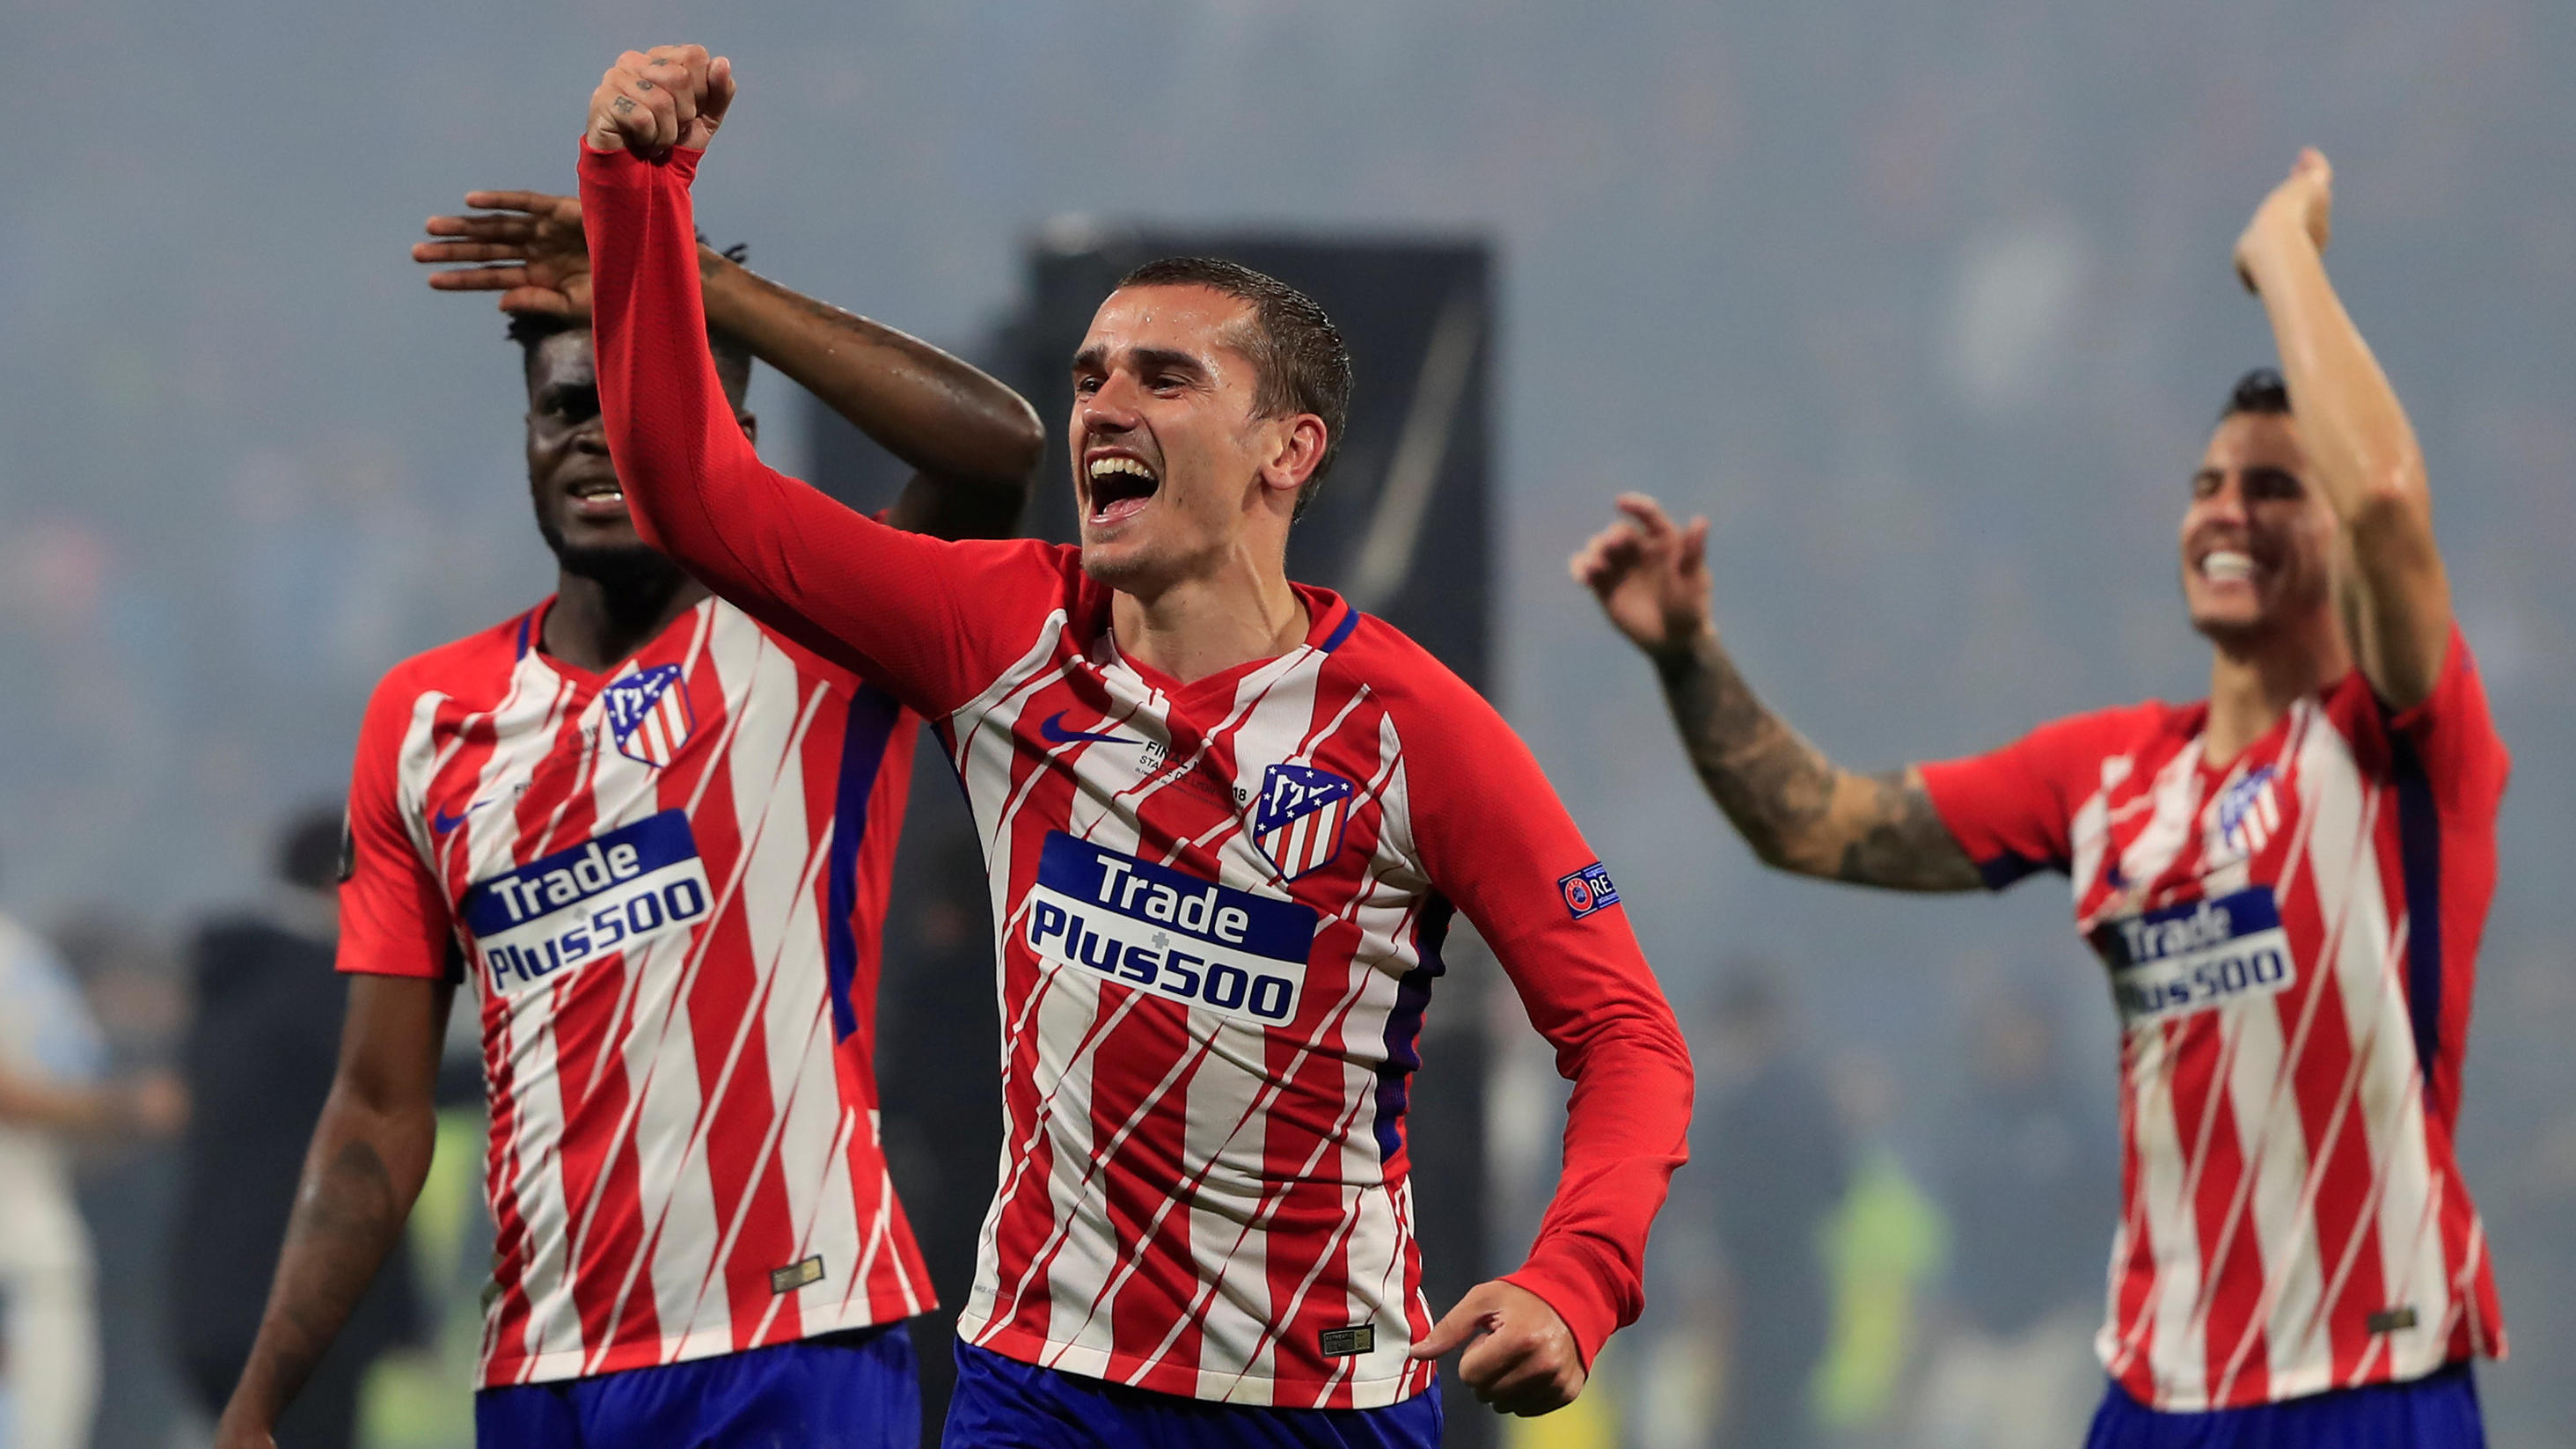 Soccer Football - Europa League Final - Olympique de Marseille vs Atletico Madrid - Groupama Stadium, Lyon, France - May 16, 2018   Atletico Madrid's Antoine Griezmann celebrates winning the Europa League               REUTERS/Gonzalo Fuentes